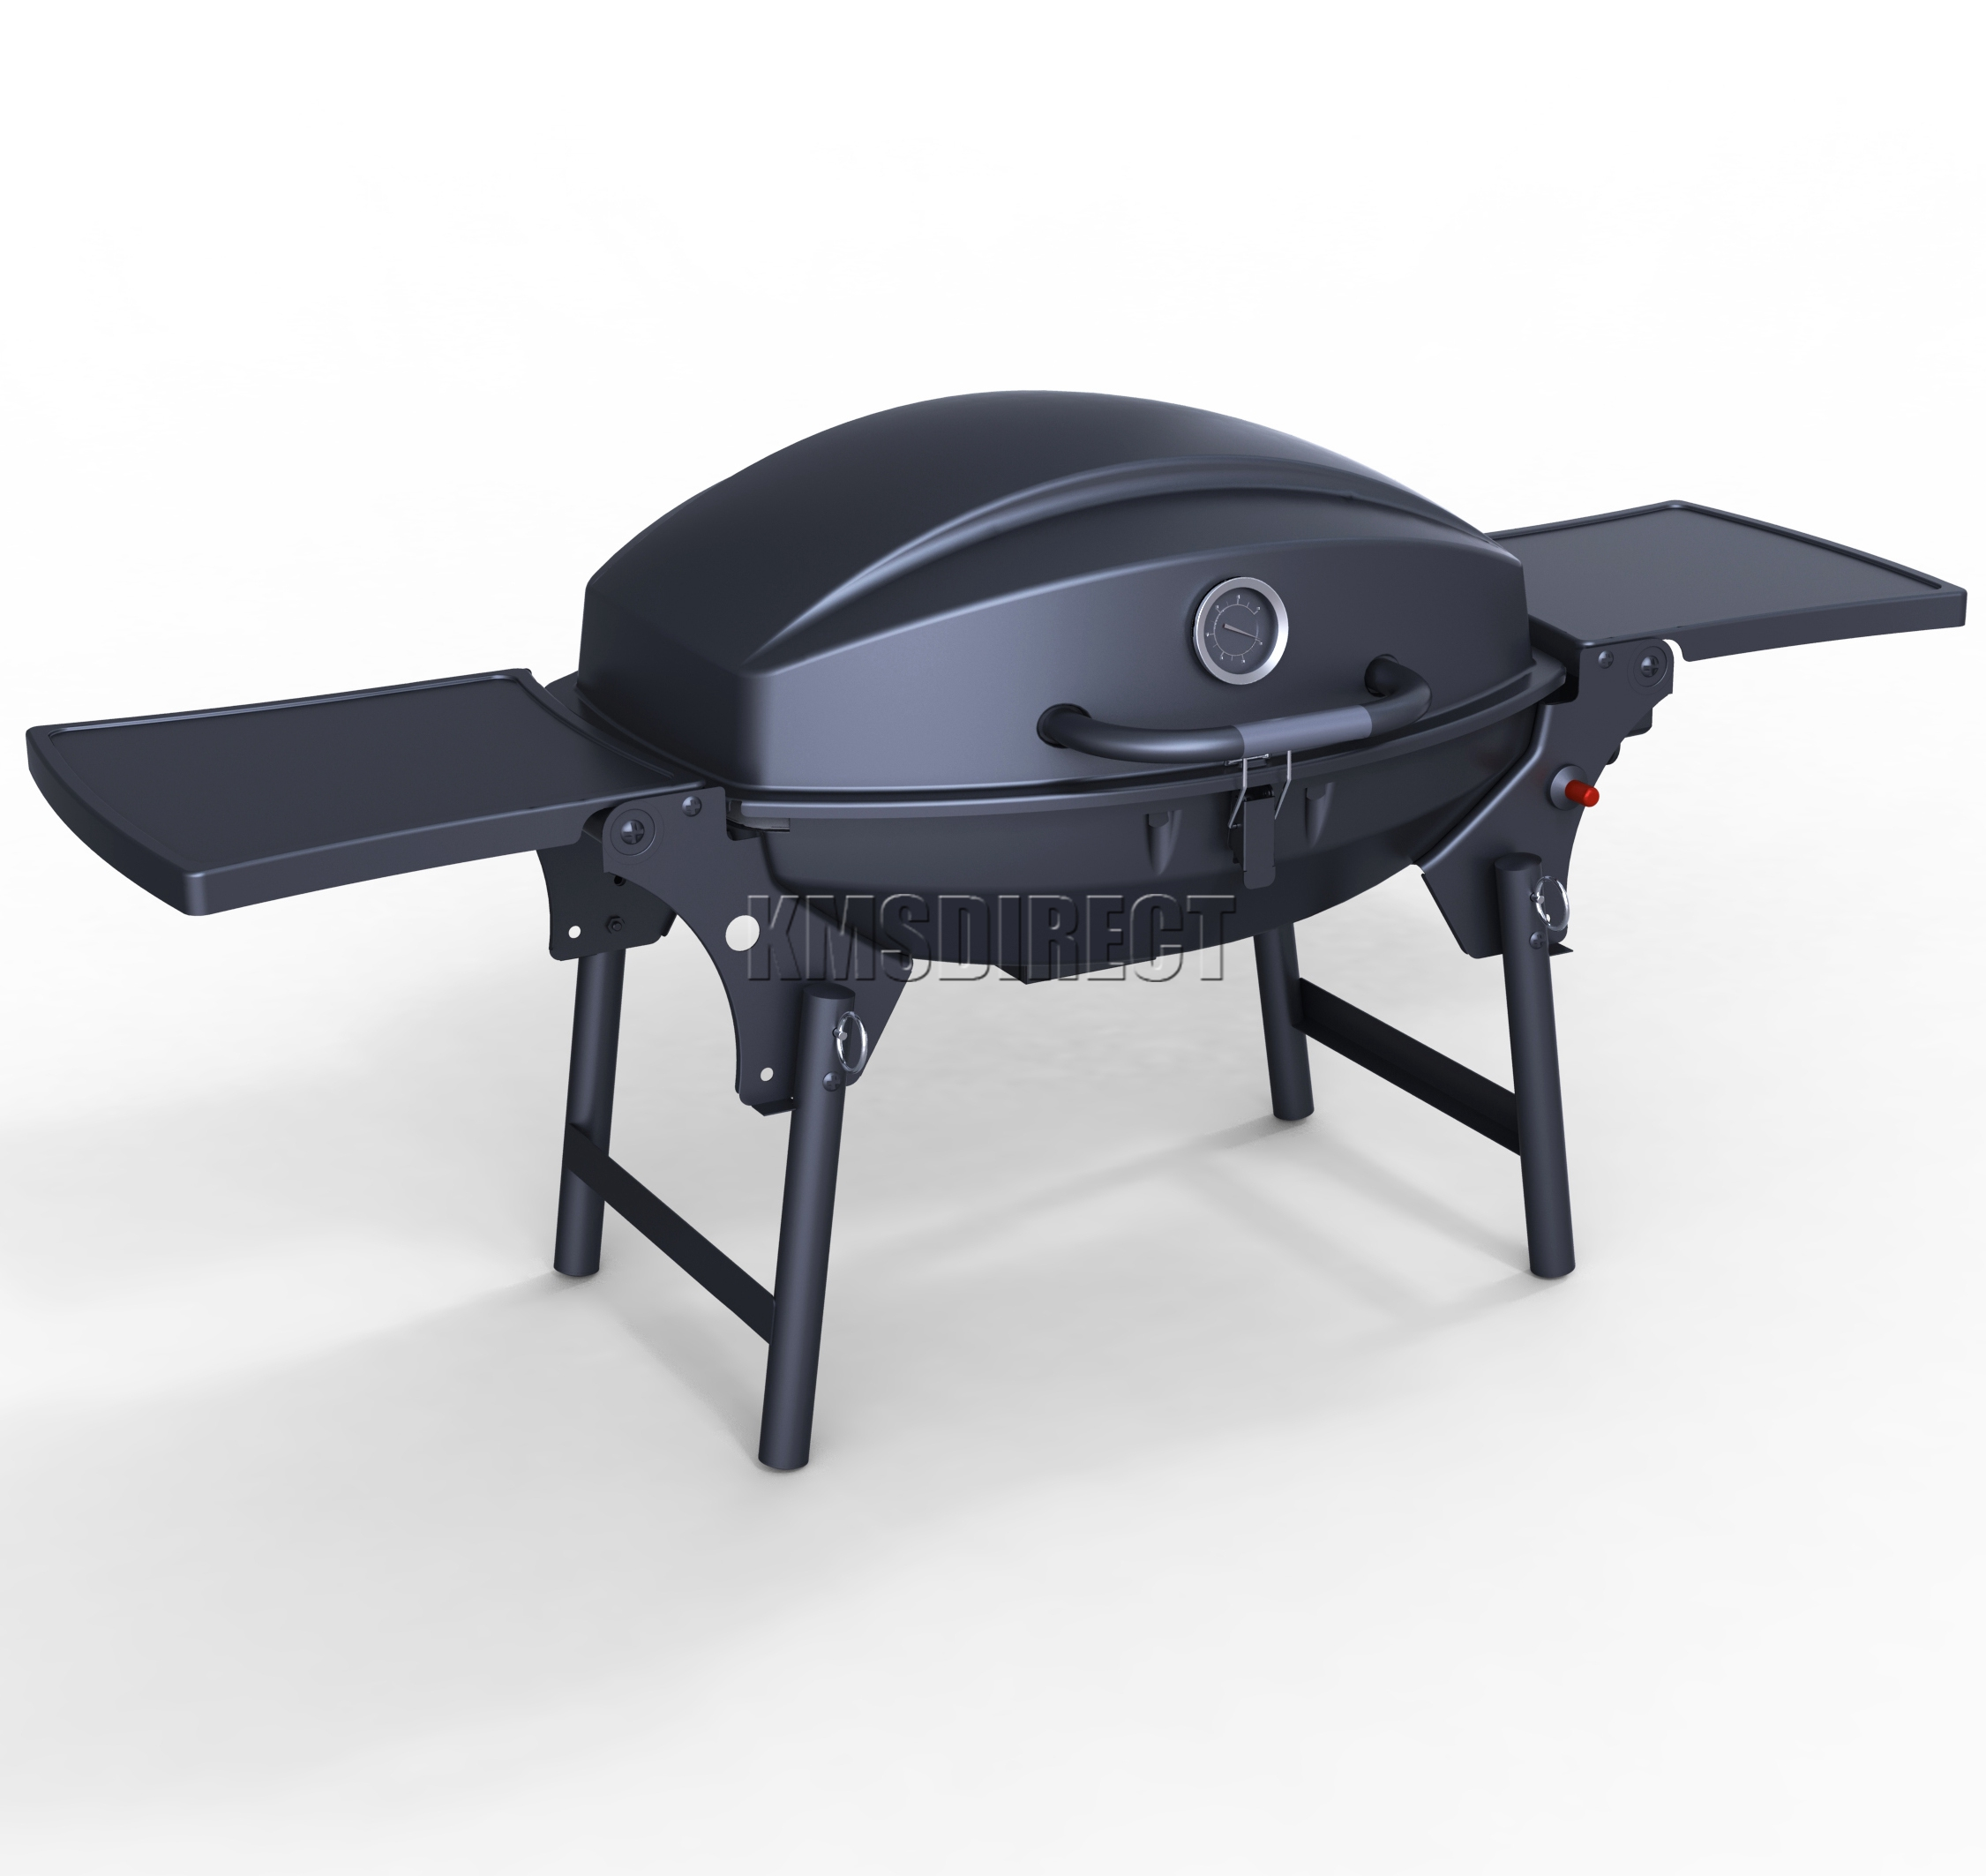 Foxhunter Garden Portable Foldable Bbq Gas Grill Barbecue